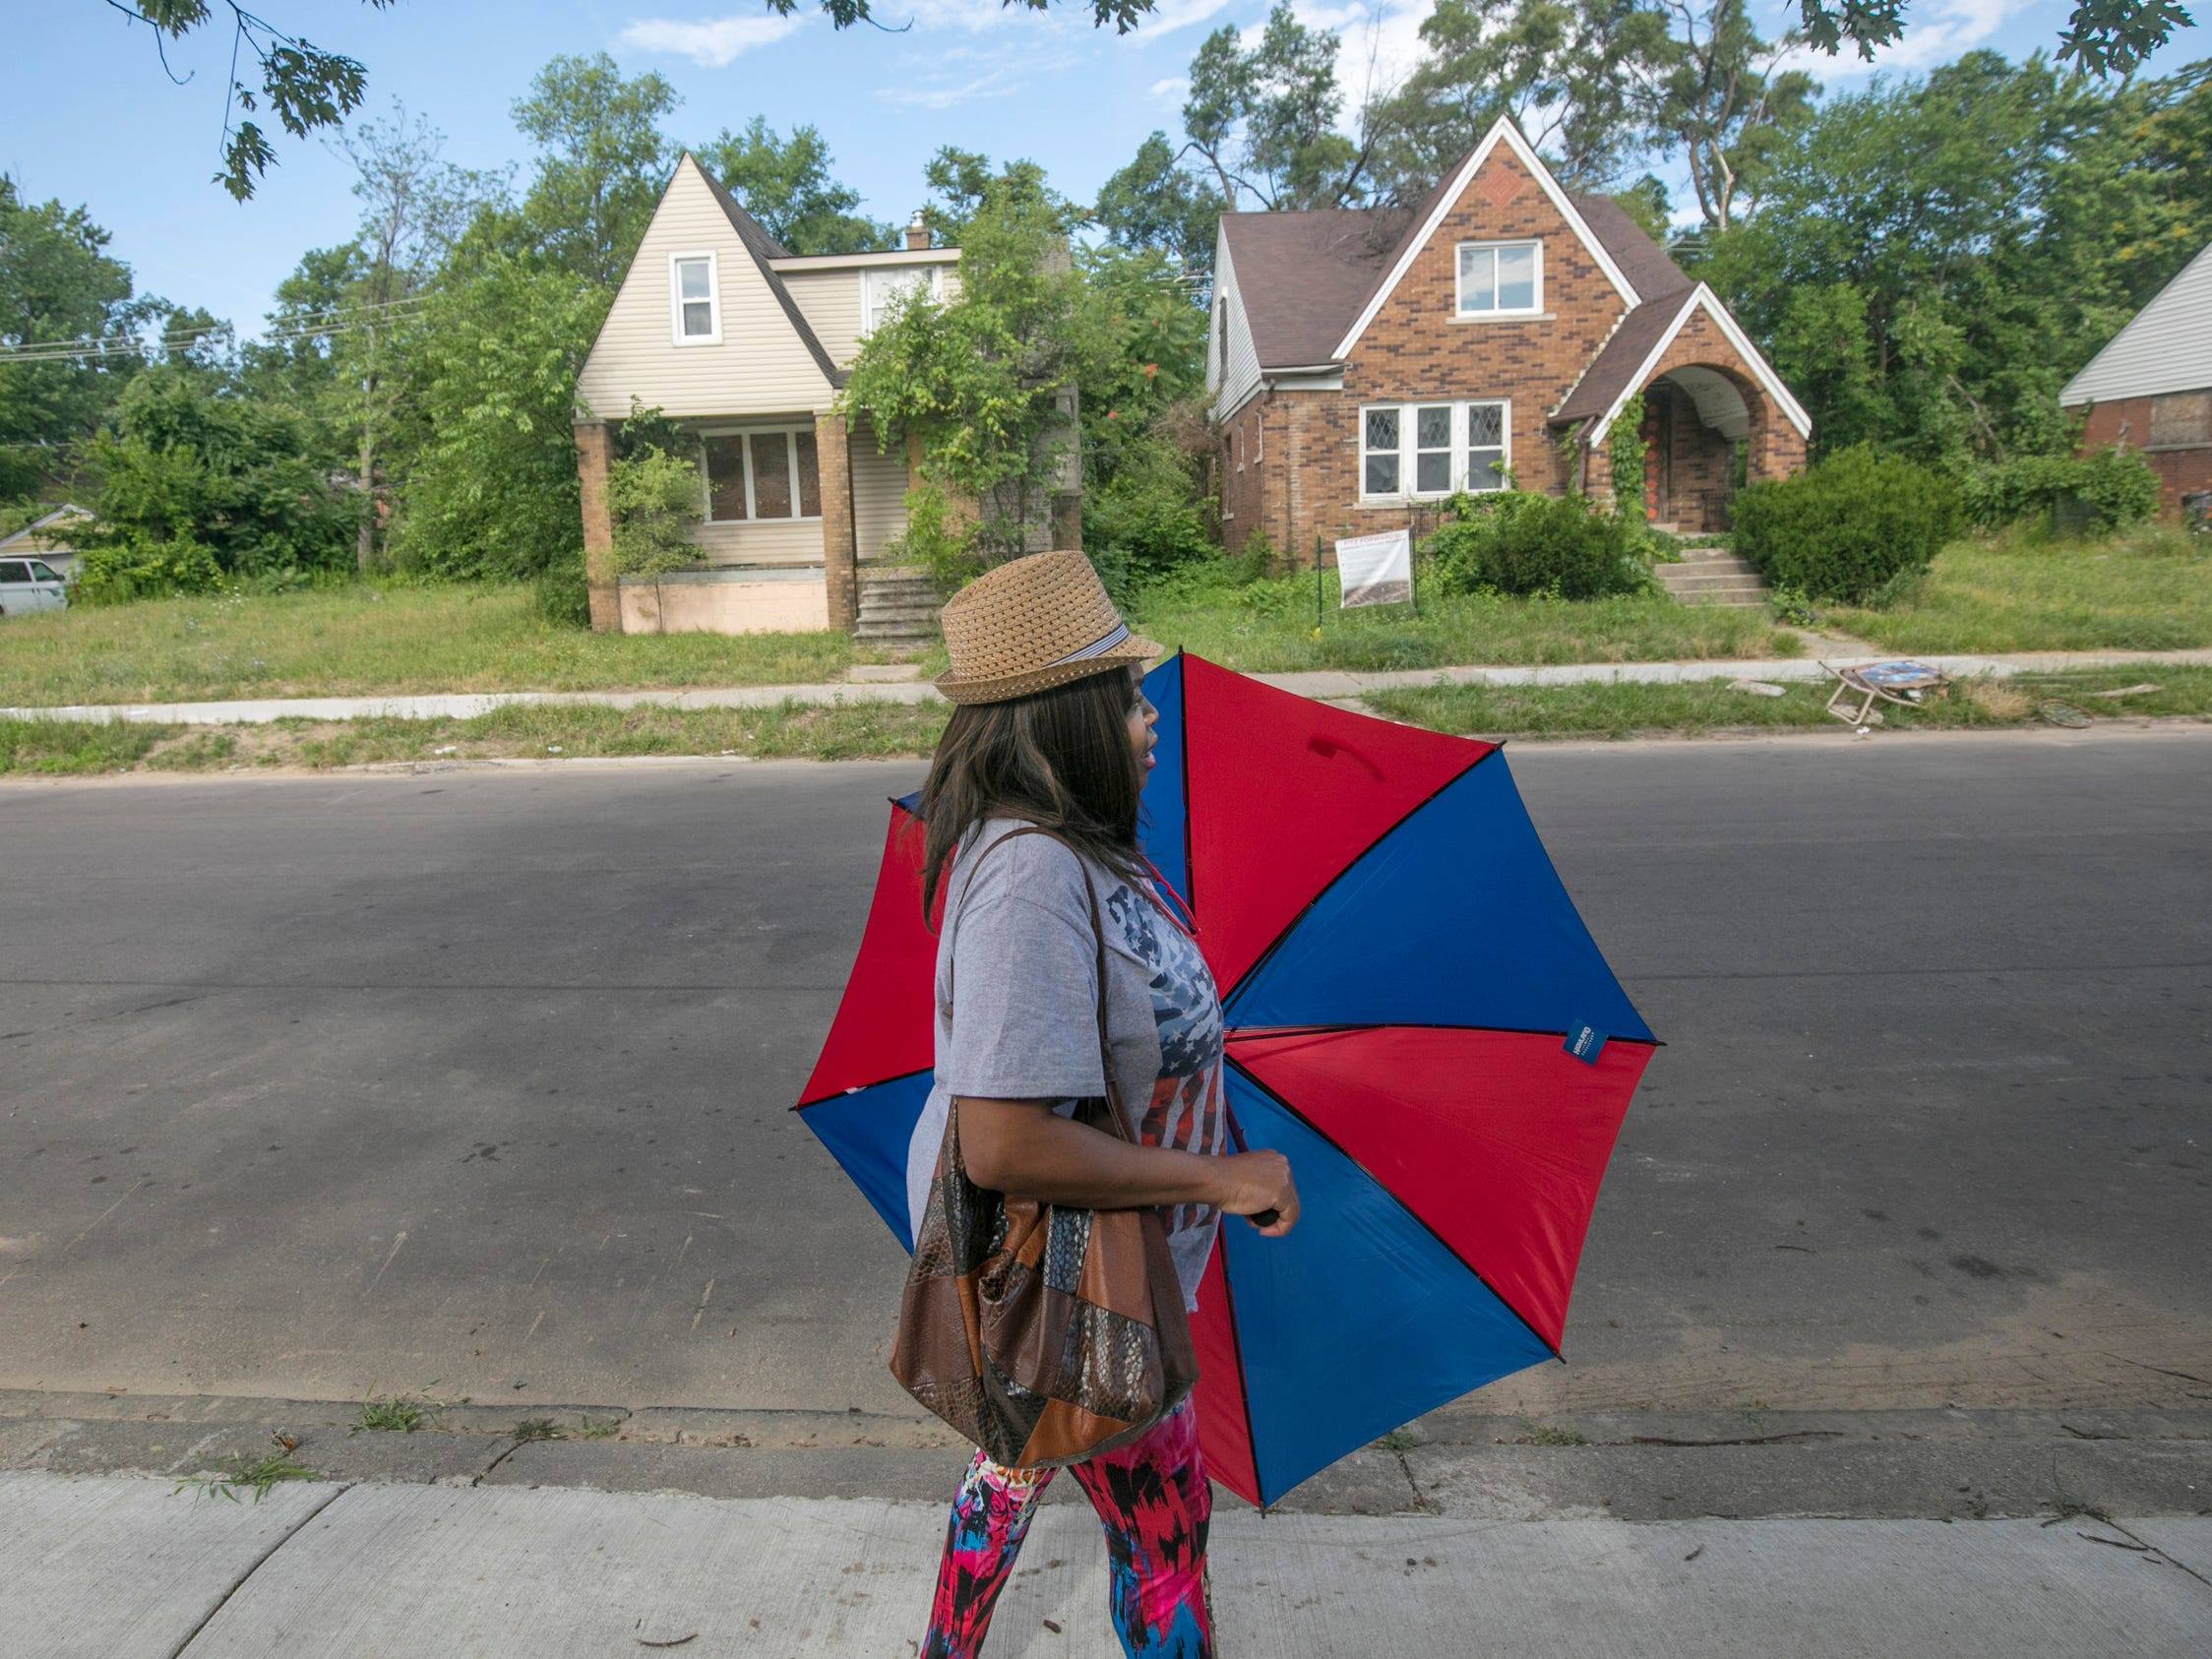 Renee Jones, 49, of Woodingham Drive in Detroit said she would be more inclined to stay in the neighborhood if some of the abandoned homes would get renovated as she walks by two slated homes as part of the Fitzgerald neighborhood revitalization project Thursday, July 5, 2018.